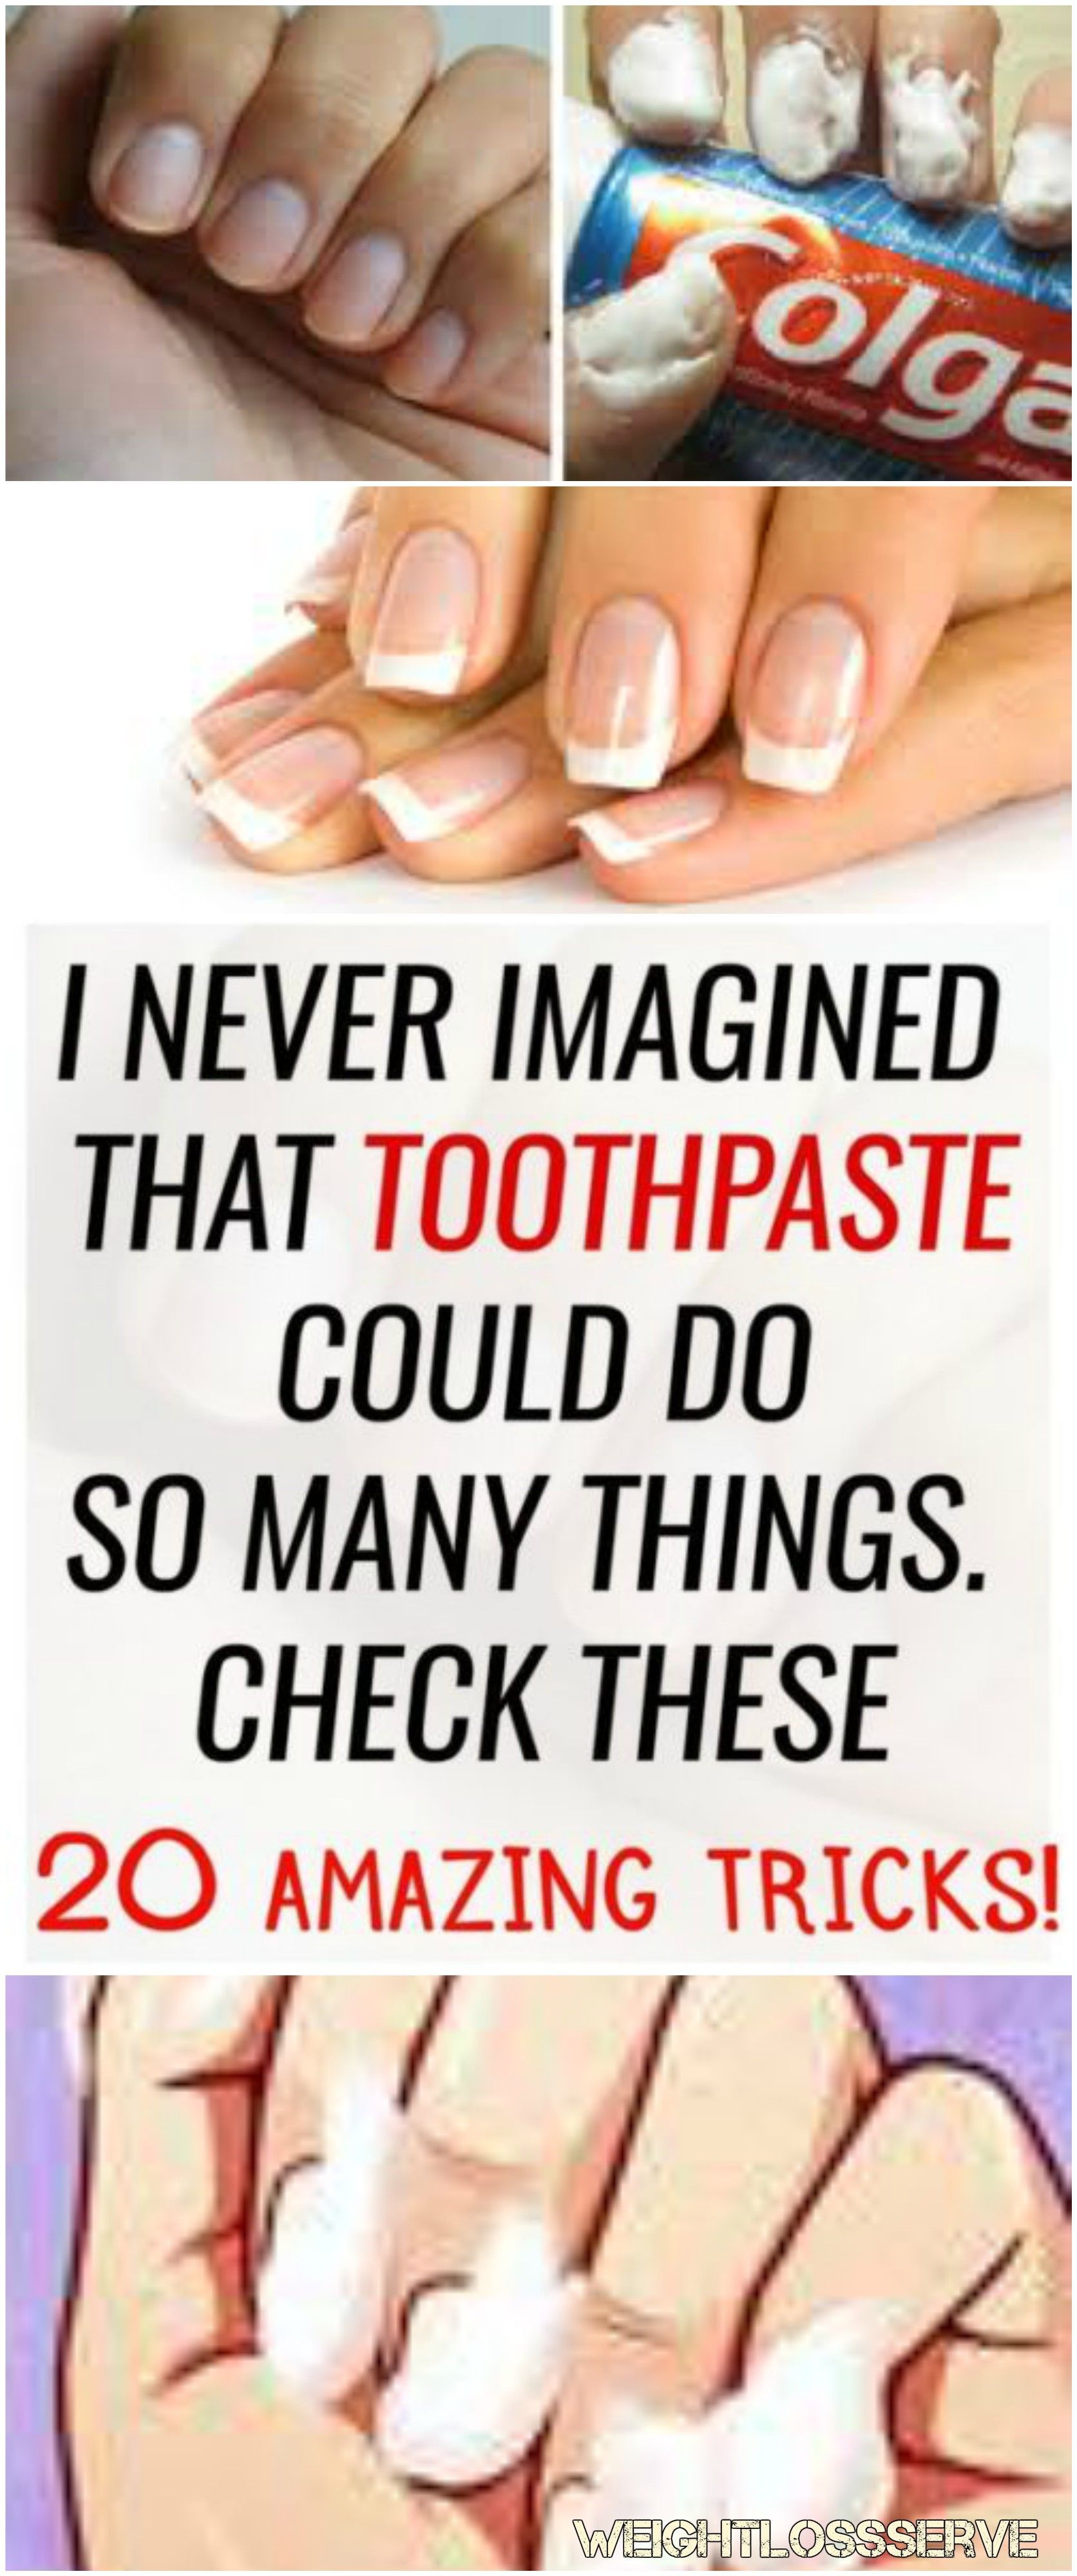 I never imagined that toothpaste could do so many things check i never imagined that toothpaste could do so many things check these 20 amazing tricks solutioingenieria Image collections